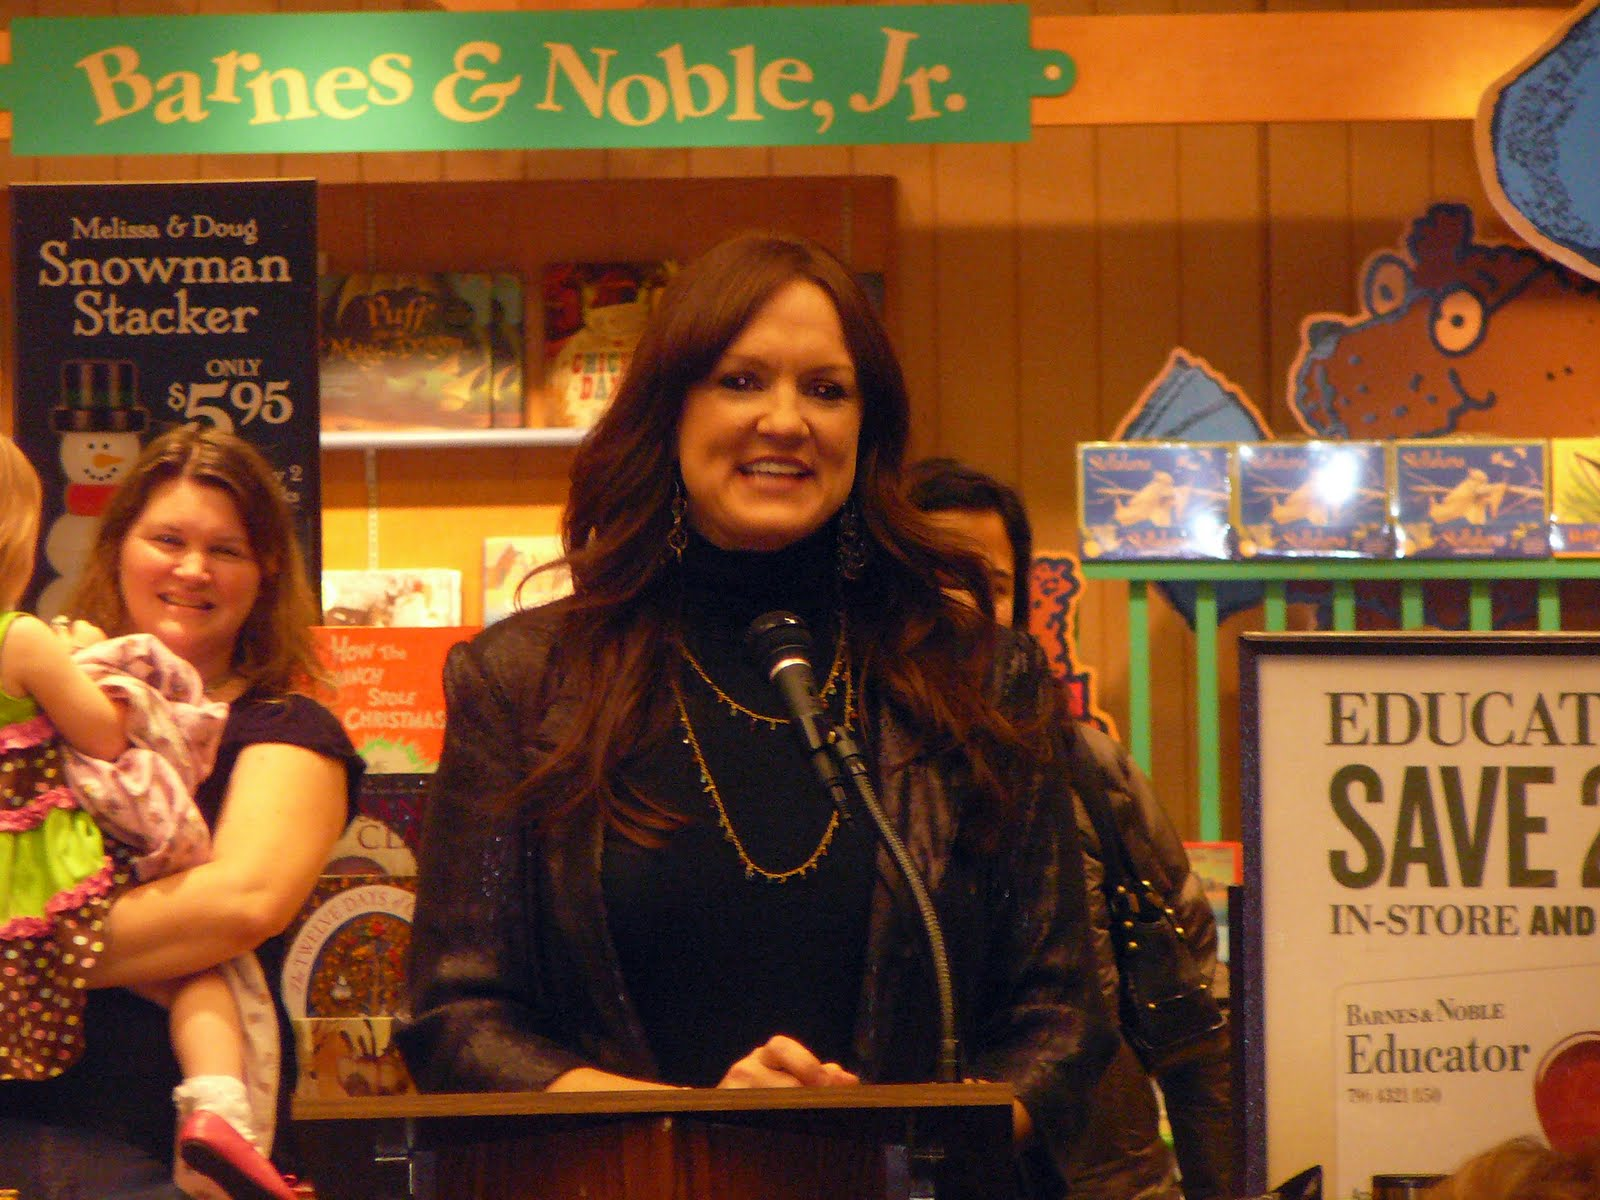 The Pursuit of Happiness Pioneer Woman book signing